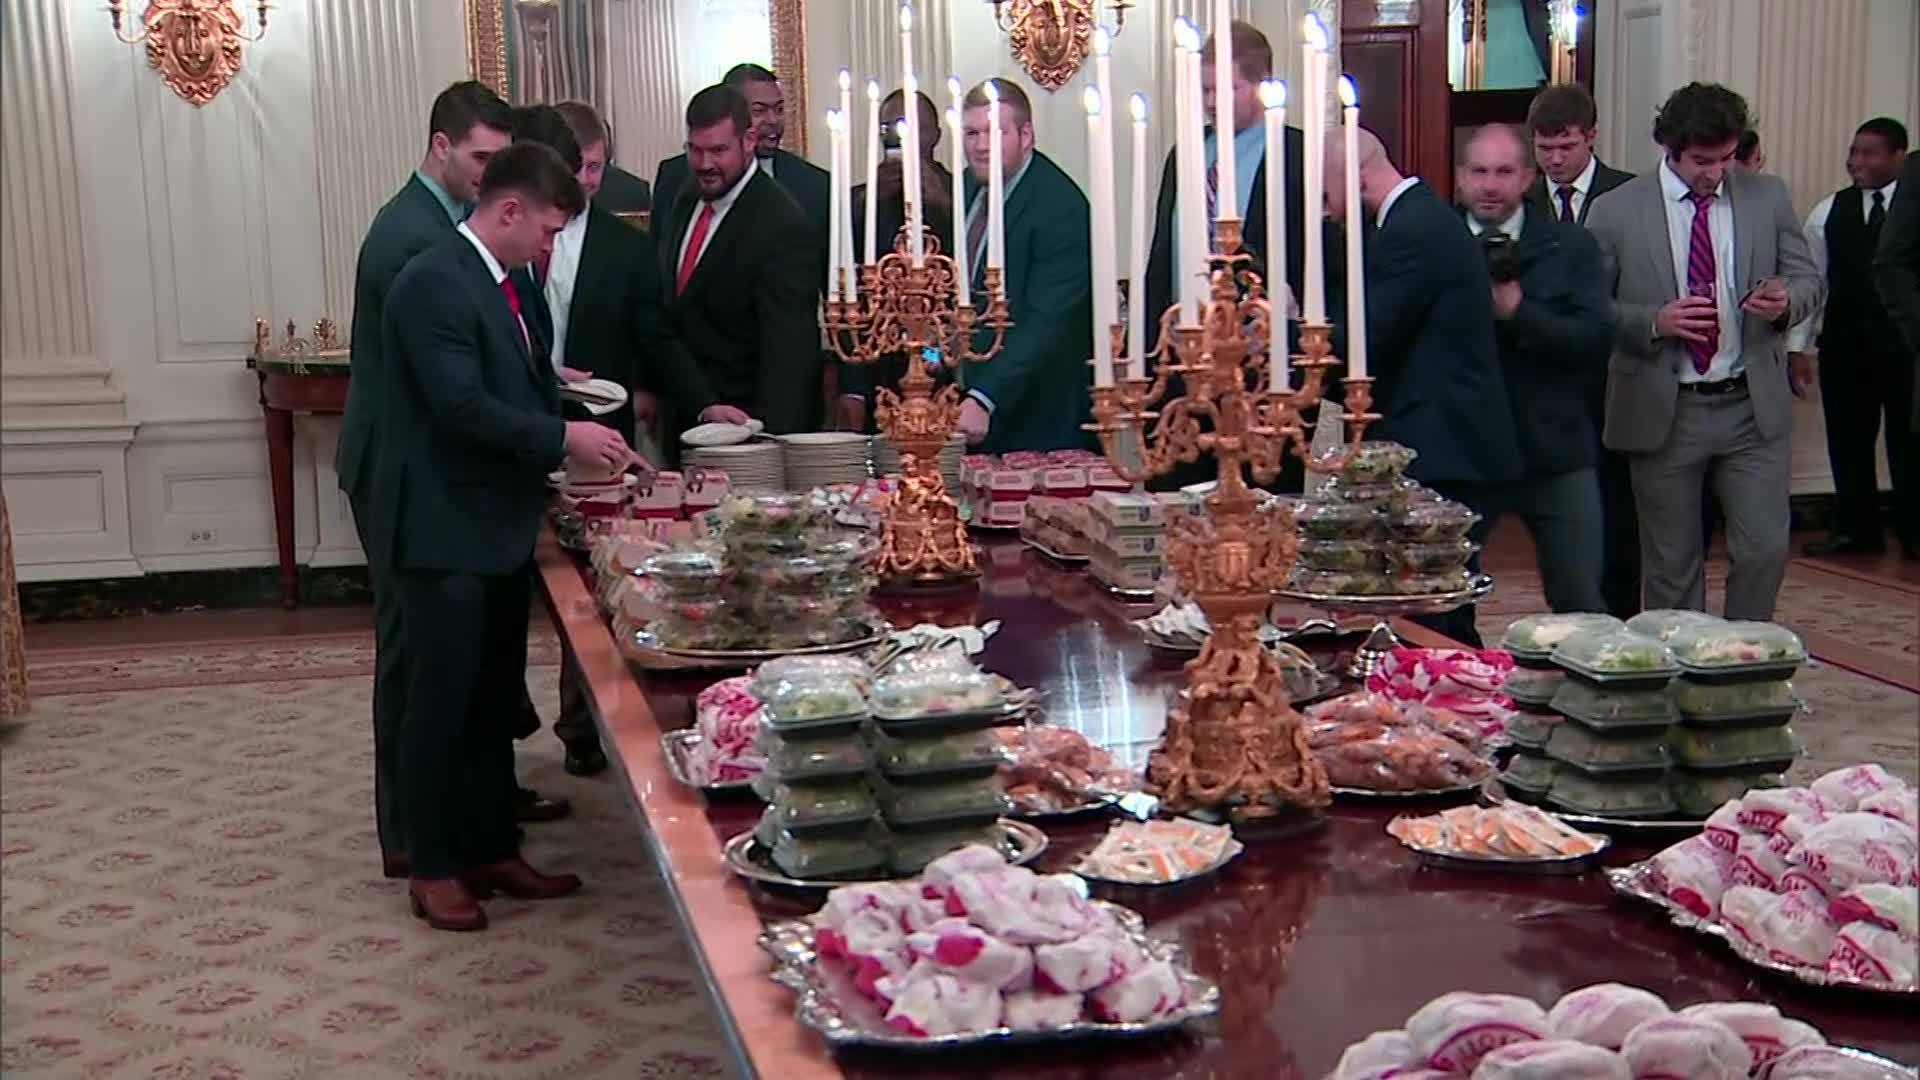 VIDEO: President Trump personally pays for Clemson's fast food at White House